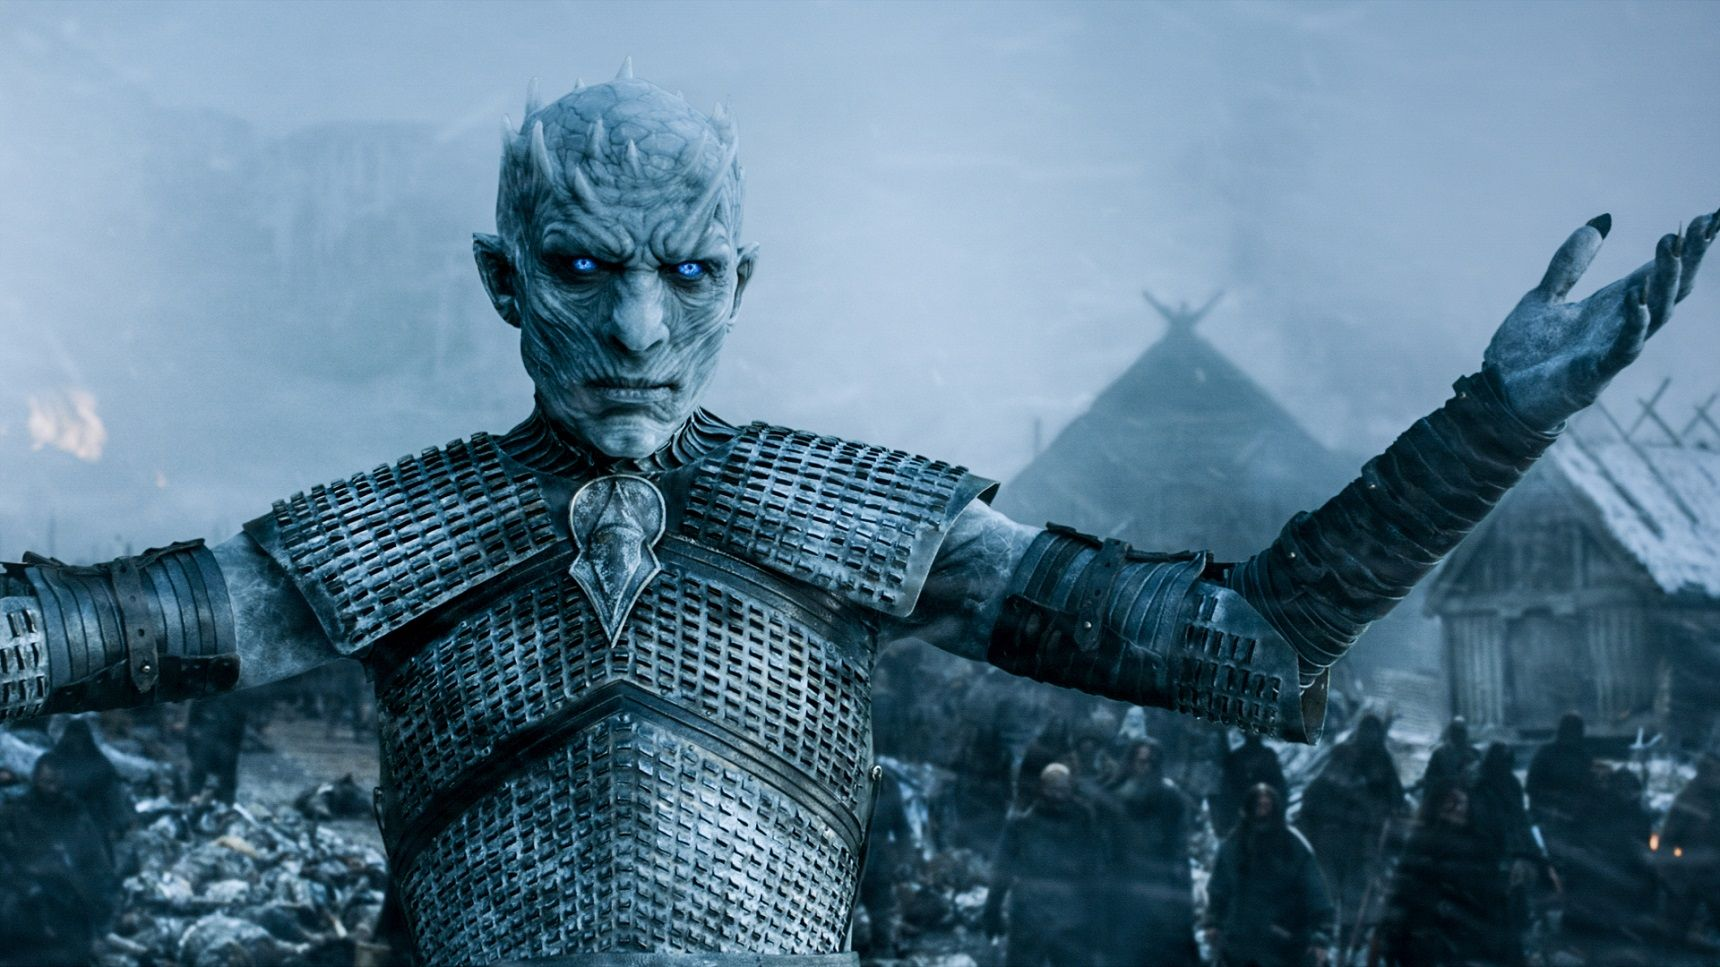 20 Things You Didn't Know About Game Of Thrones